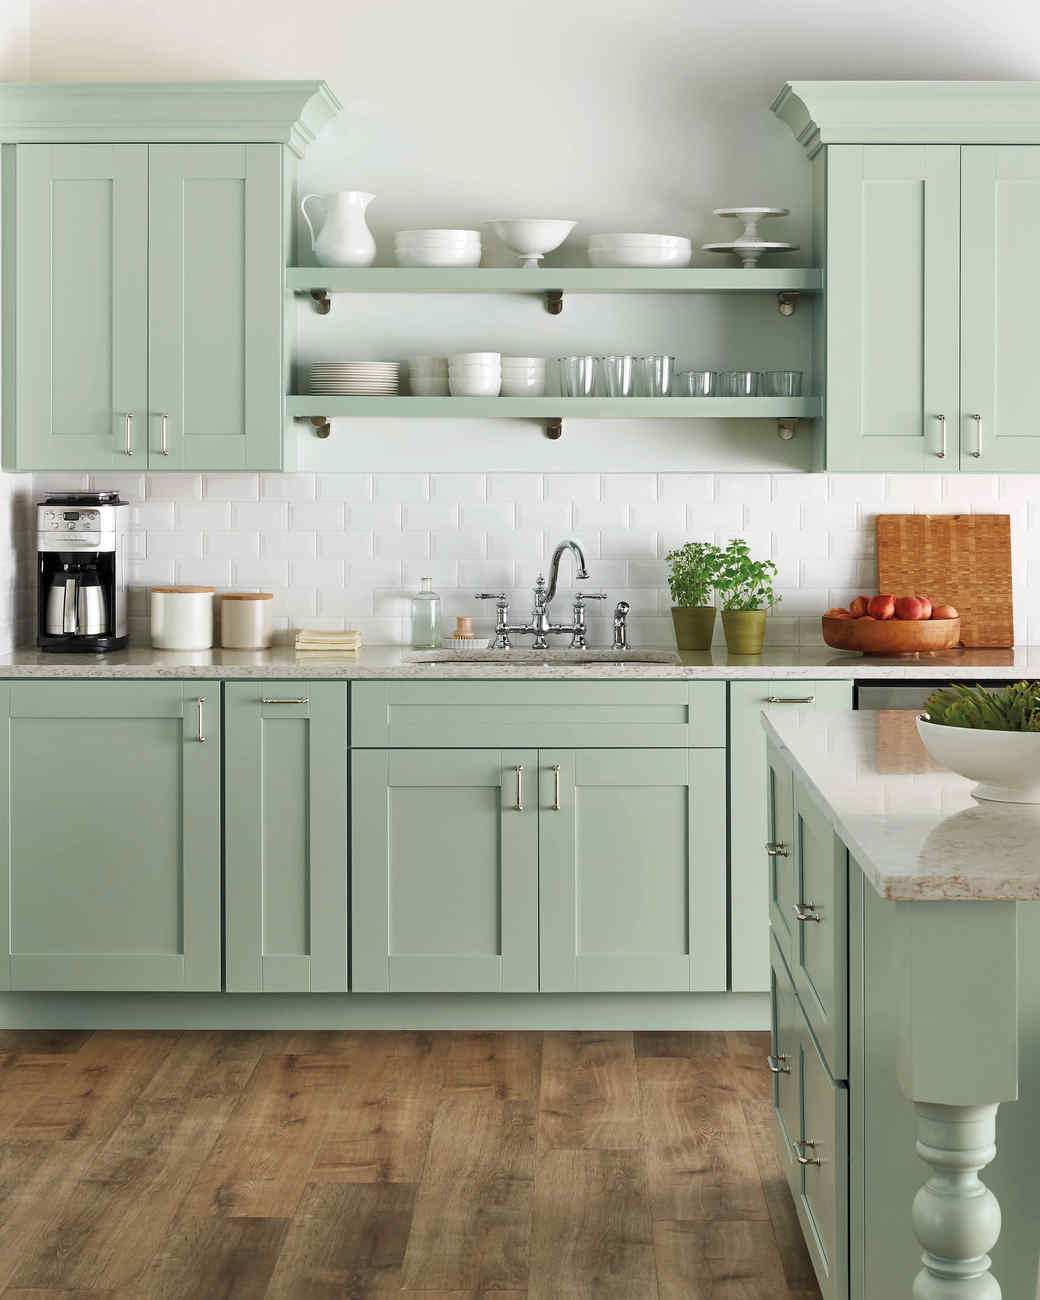 Home Depot Select Kitchen Style Green Cabinets